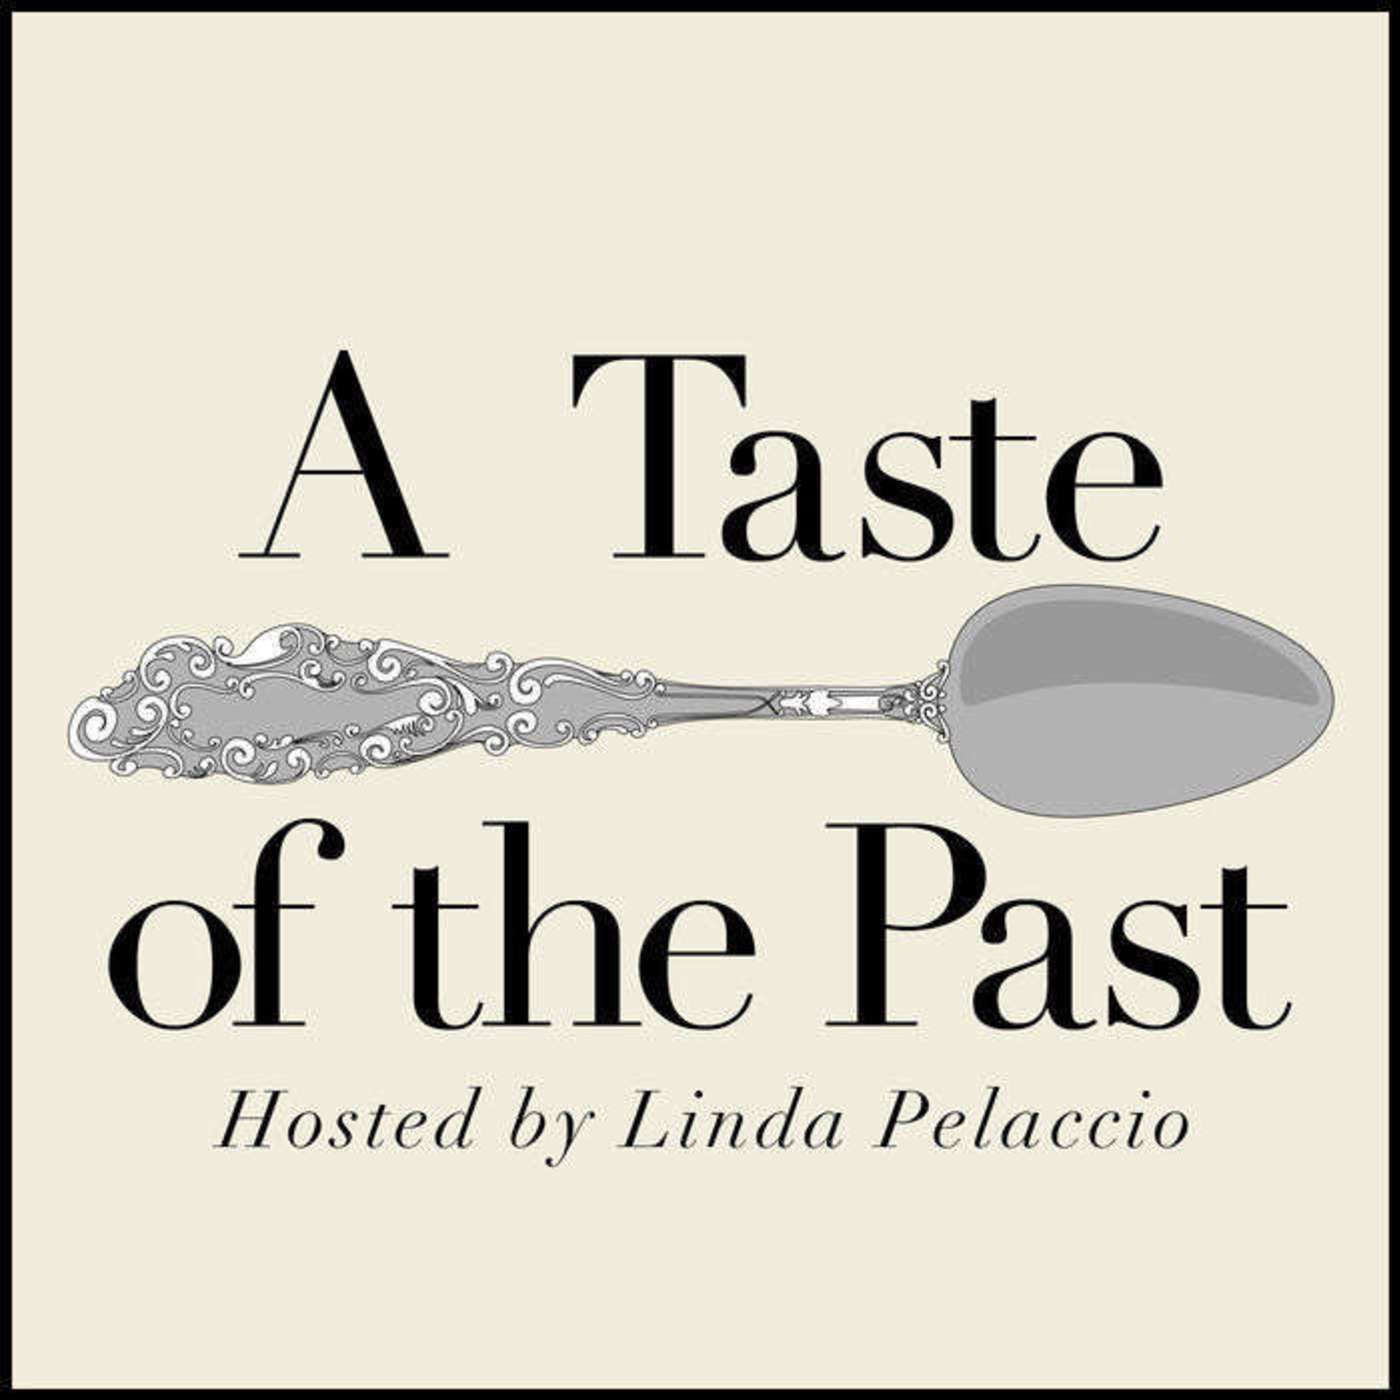 Episode 70: The Great American Debate: No National Dish